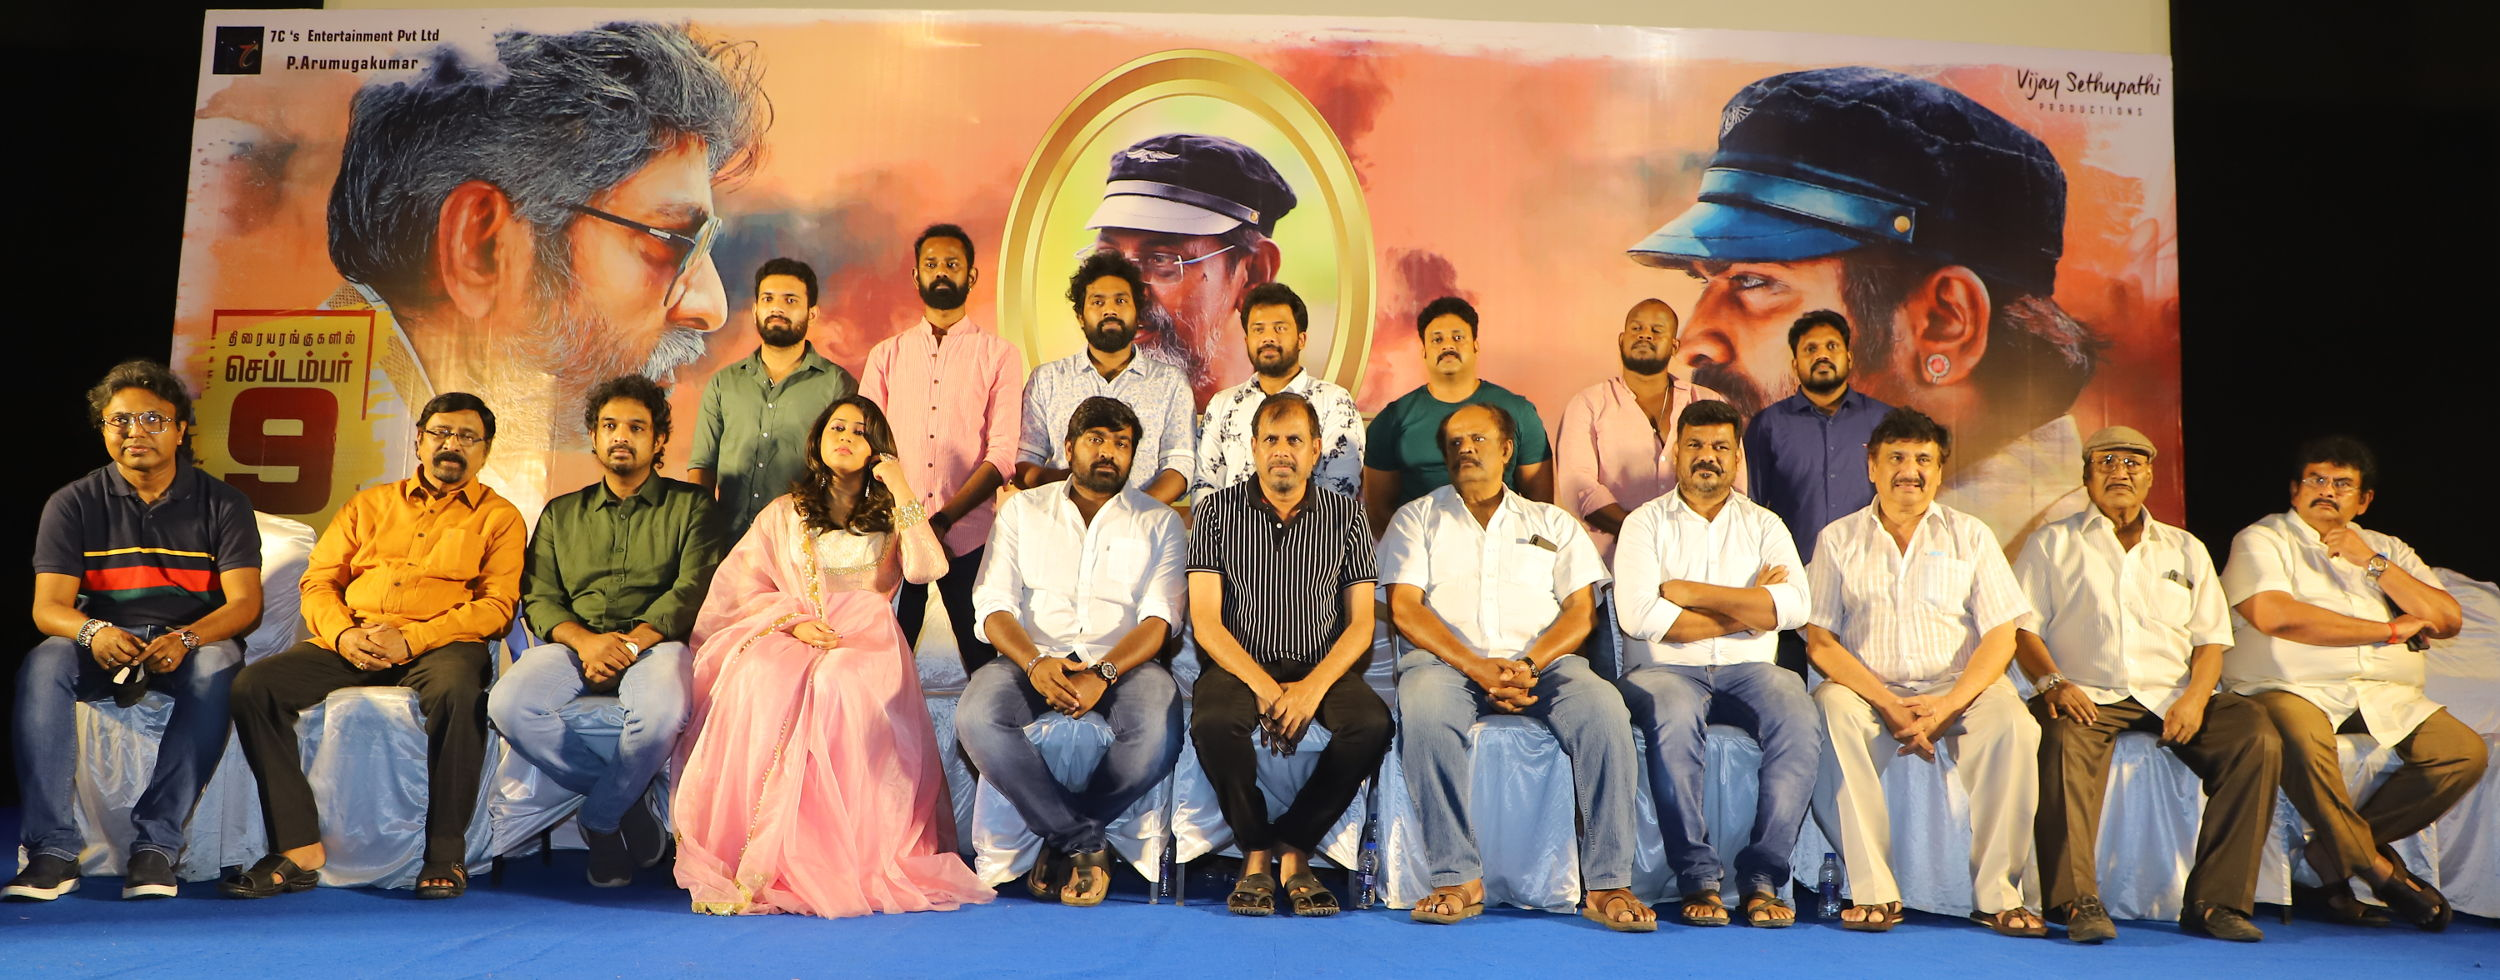 SP Jananathan Laabam is a film that is about village economy and the politics surrounding it Vijay Sethupathi